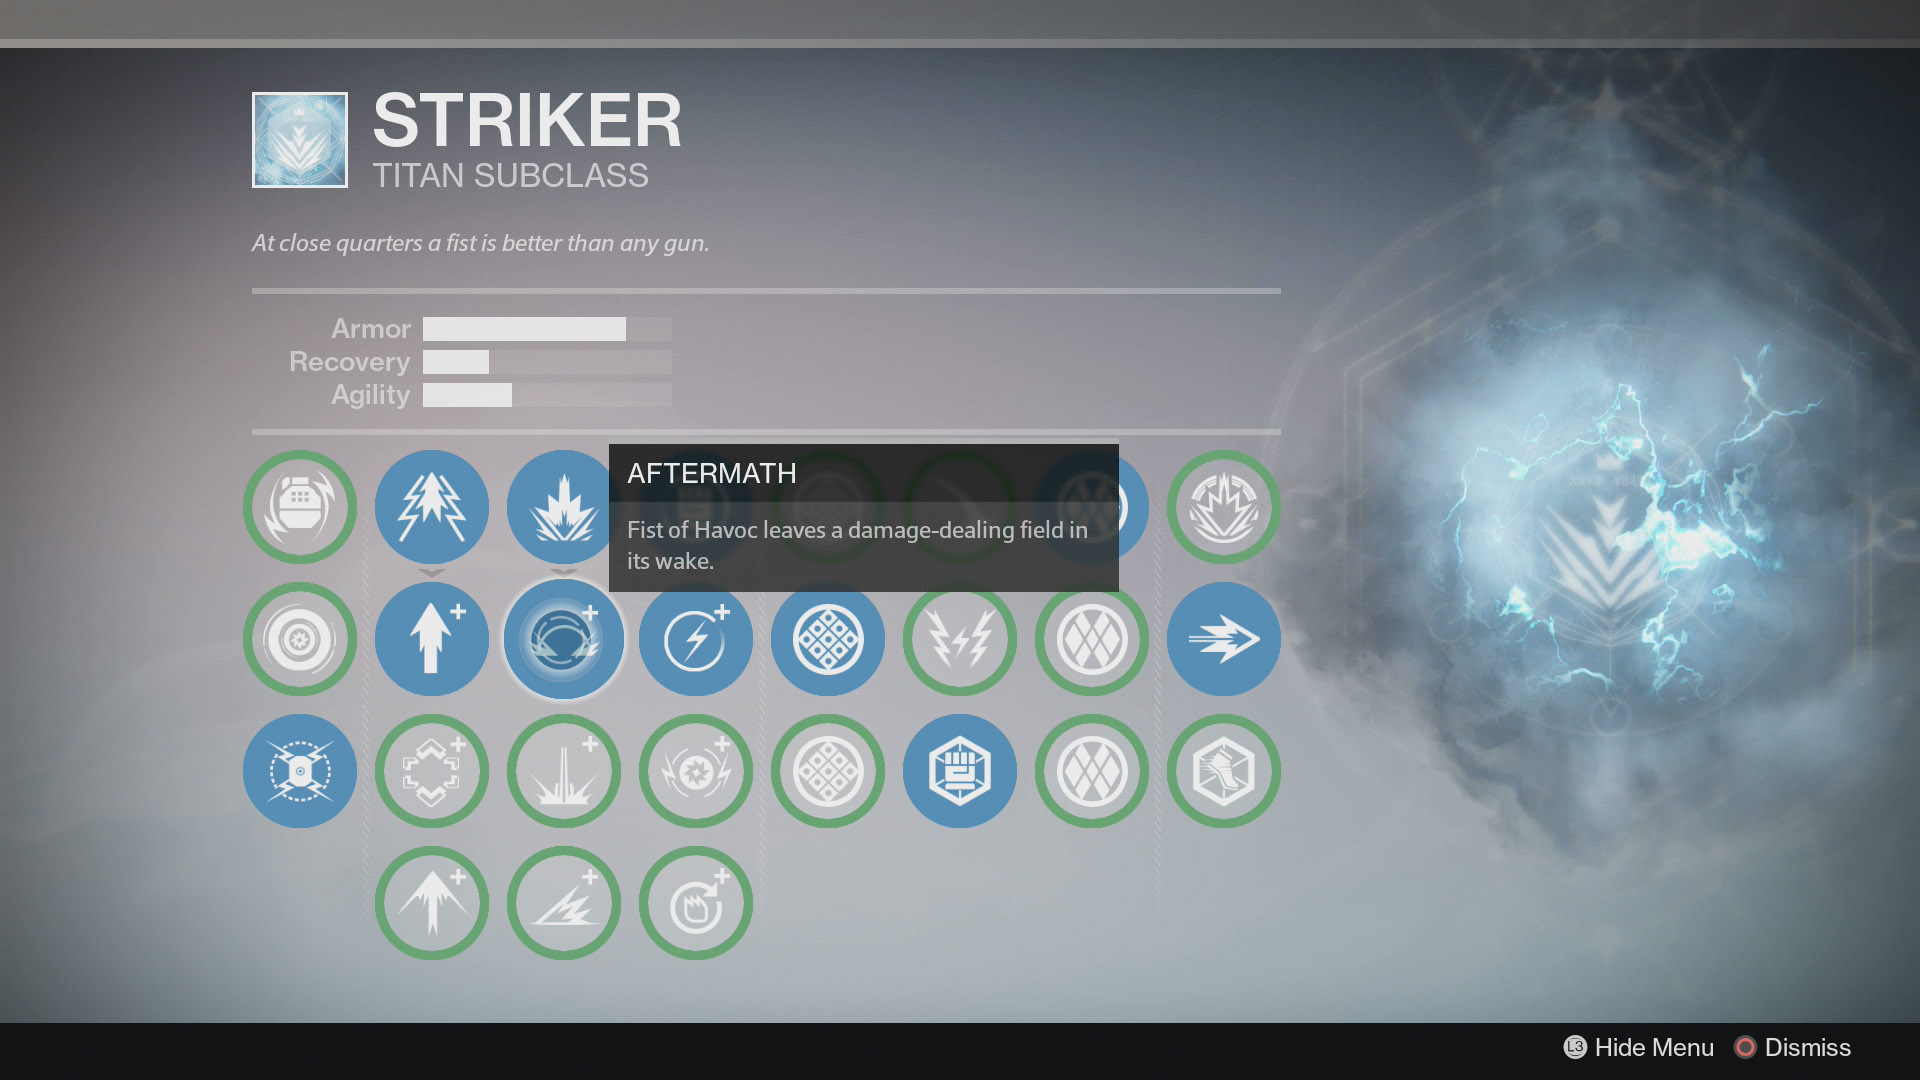 Destiny Striker Fist of Havoc